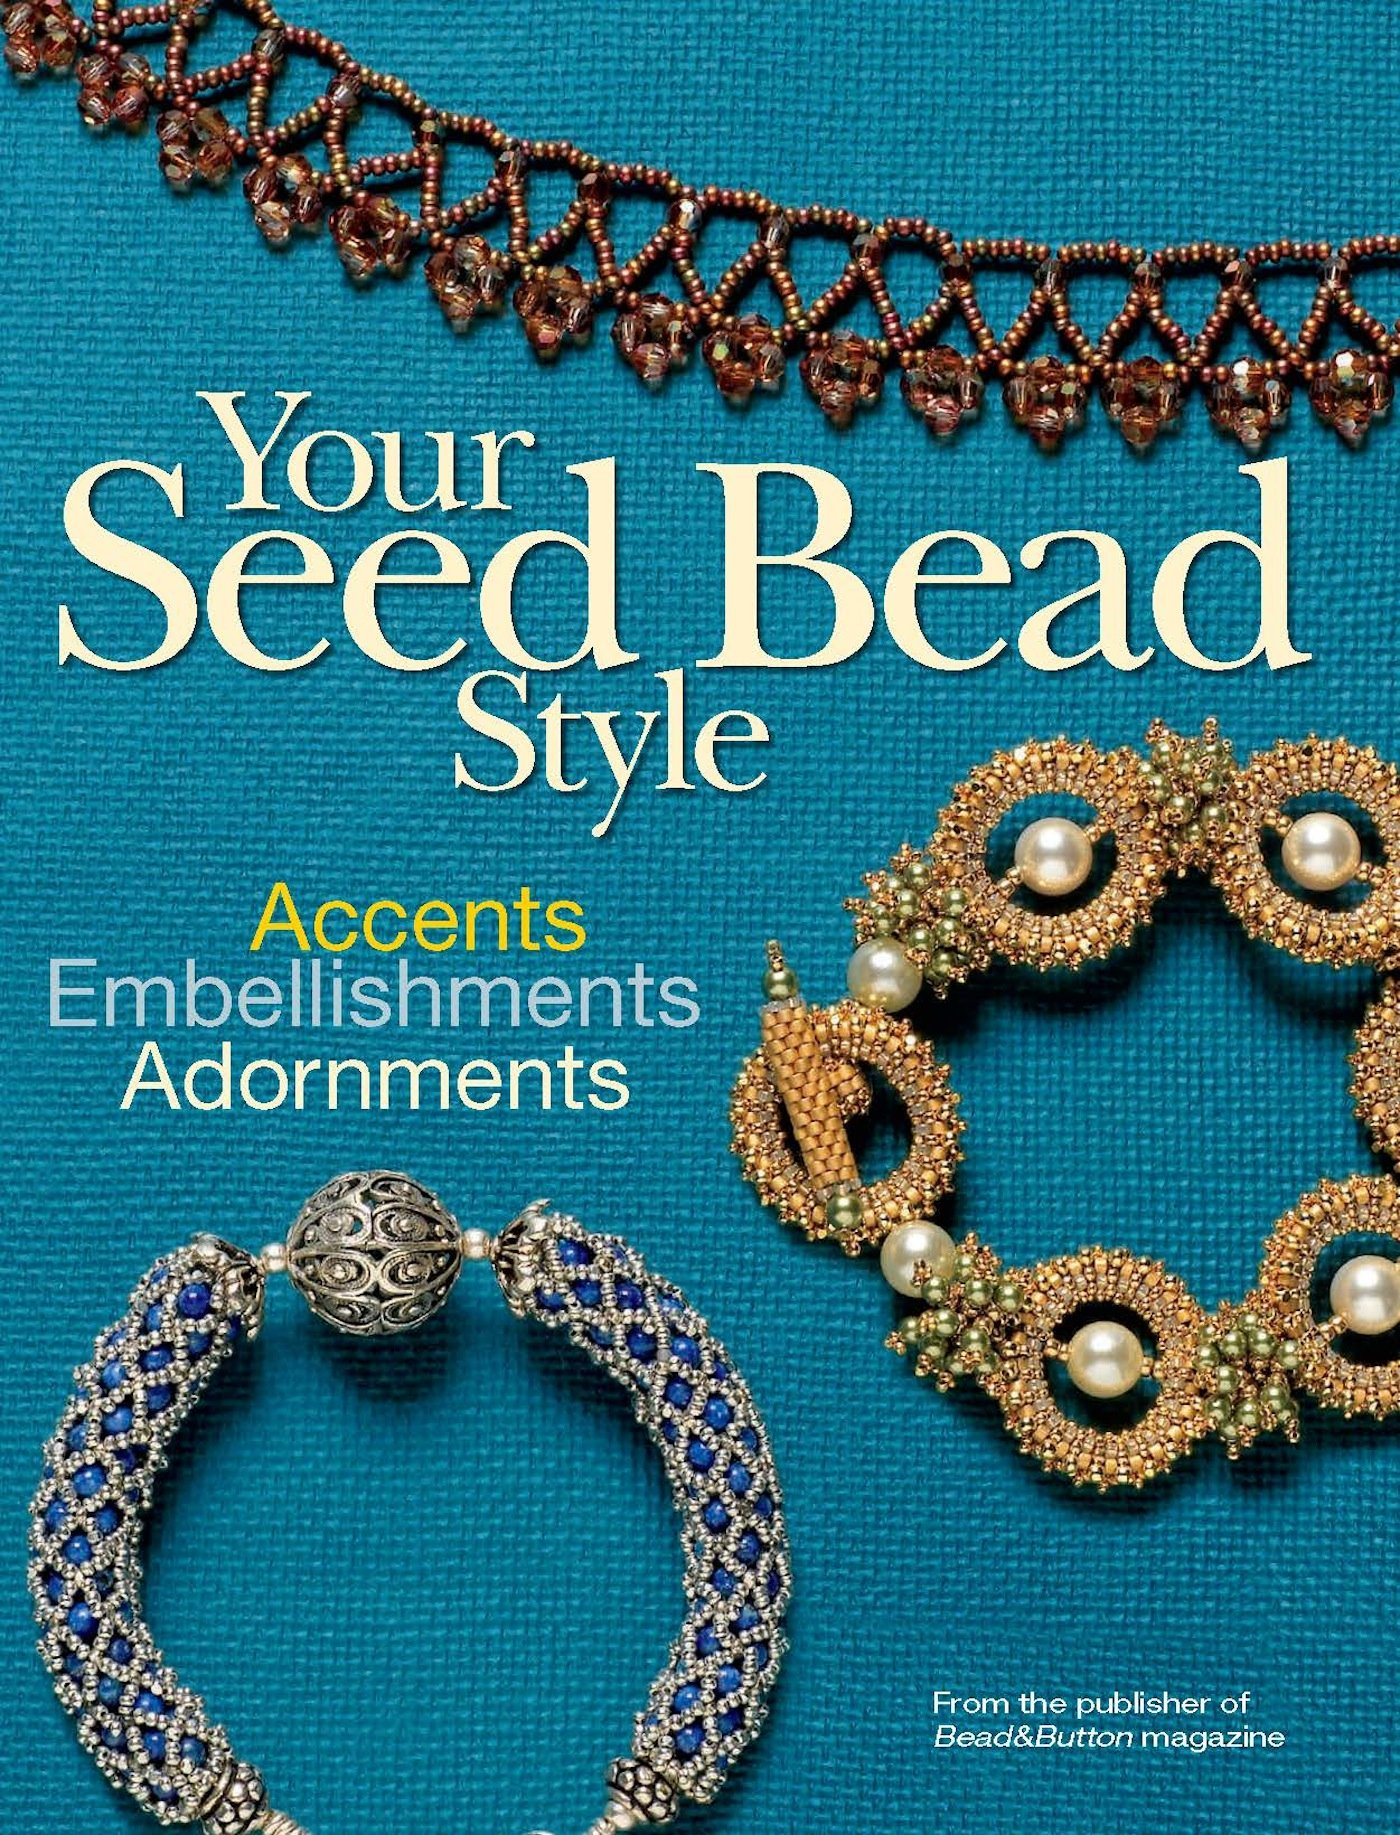 Your Seed Bead Style: Accents, Embellishments, and Adornments